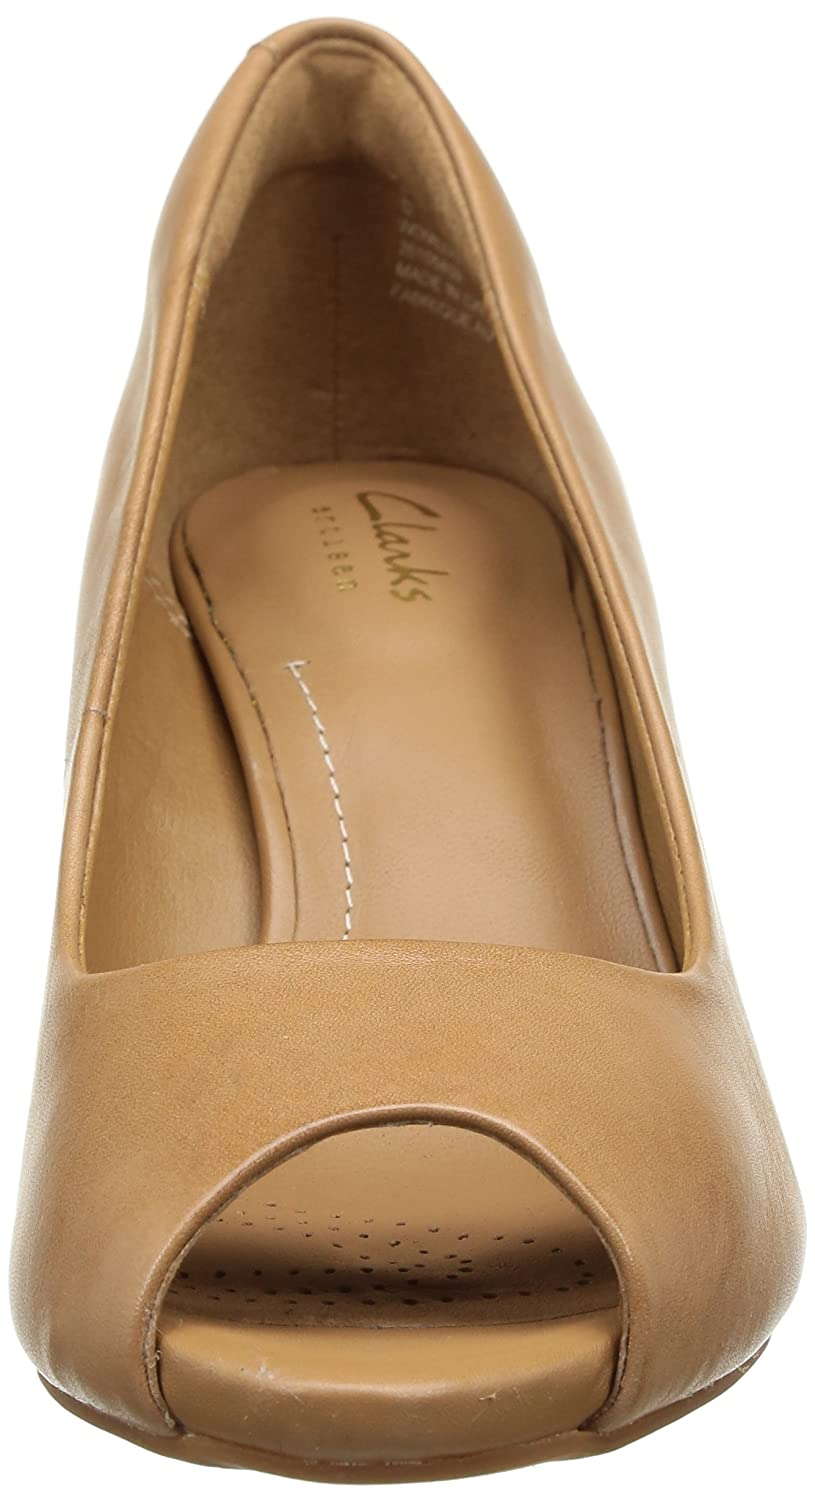 d7291aa12964 Clarks Women s Florine Portia Beige Brown Leather Fashion Sandals - 3  UK India (35.5 EU)  Buy Online at Low Prices in India - Amazon.in